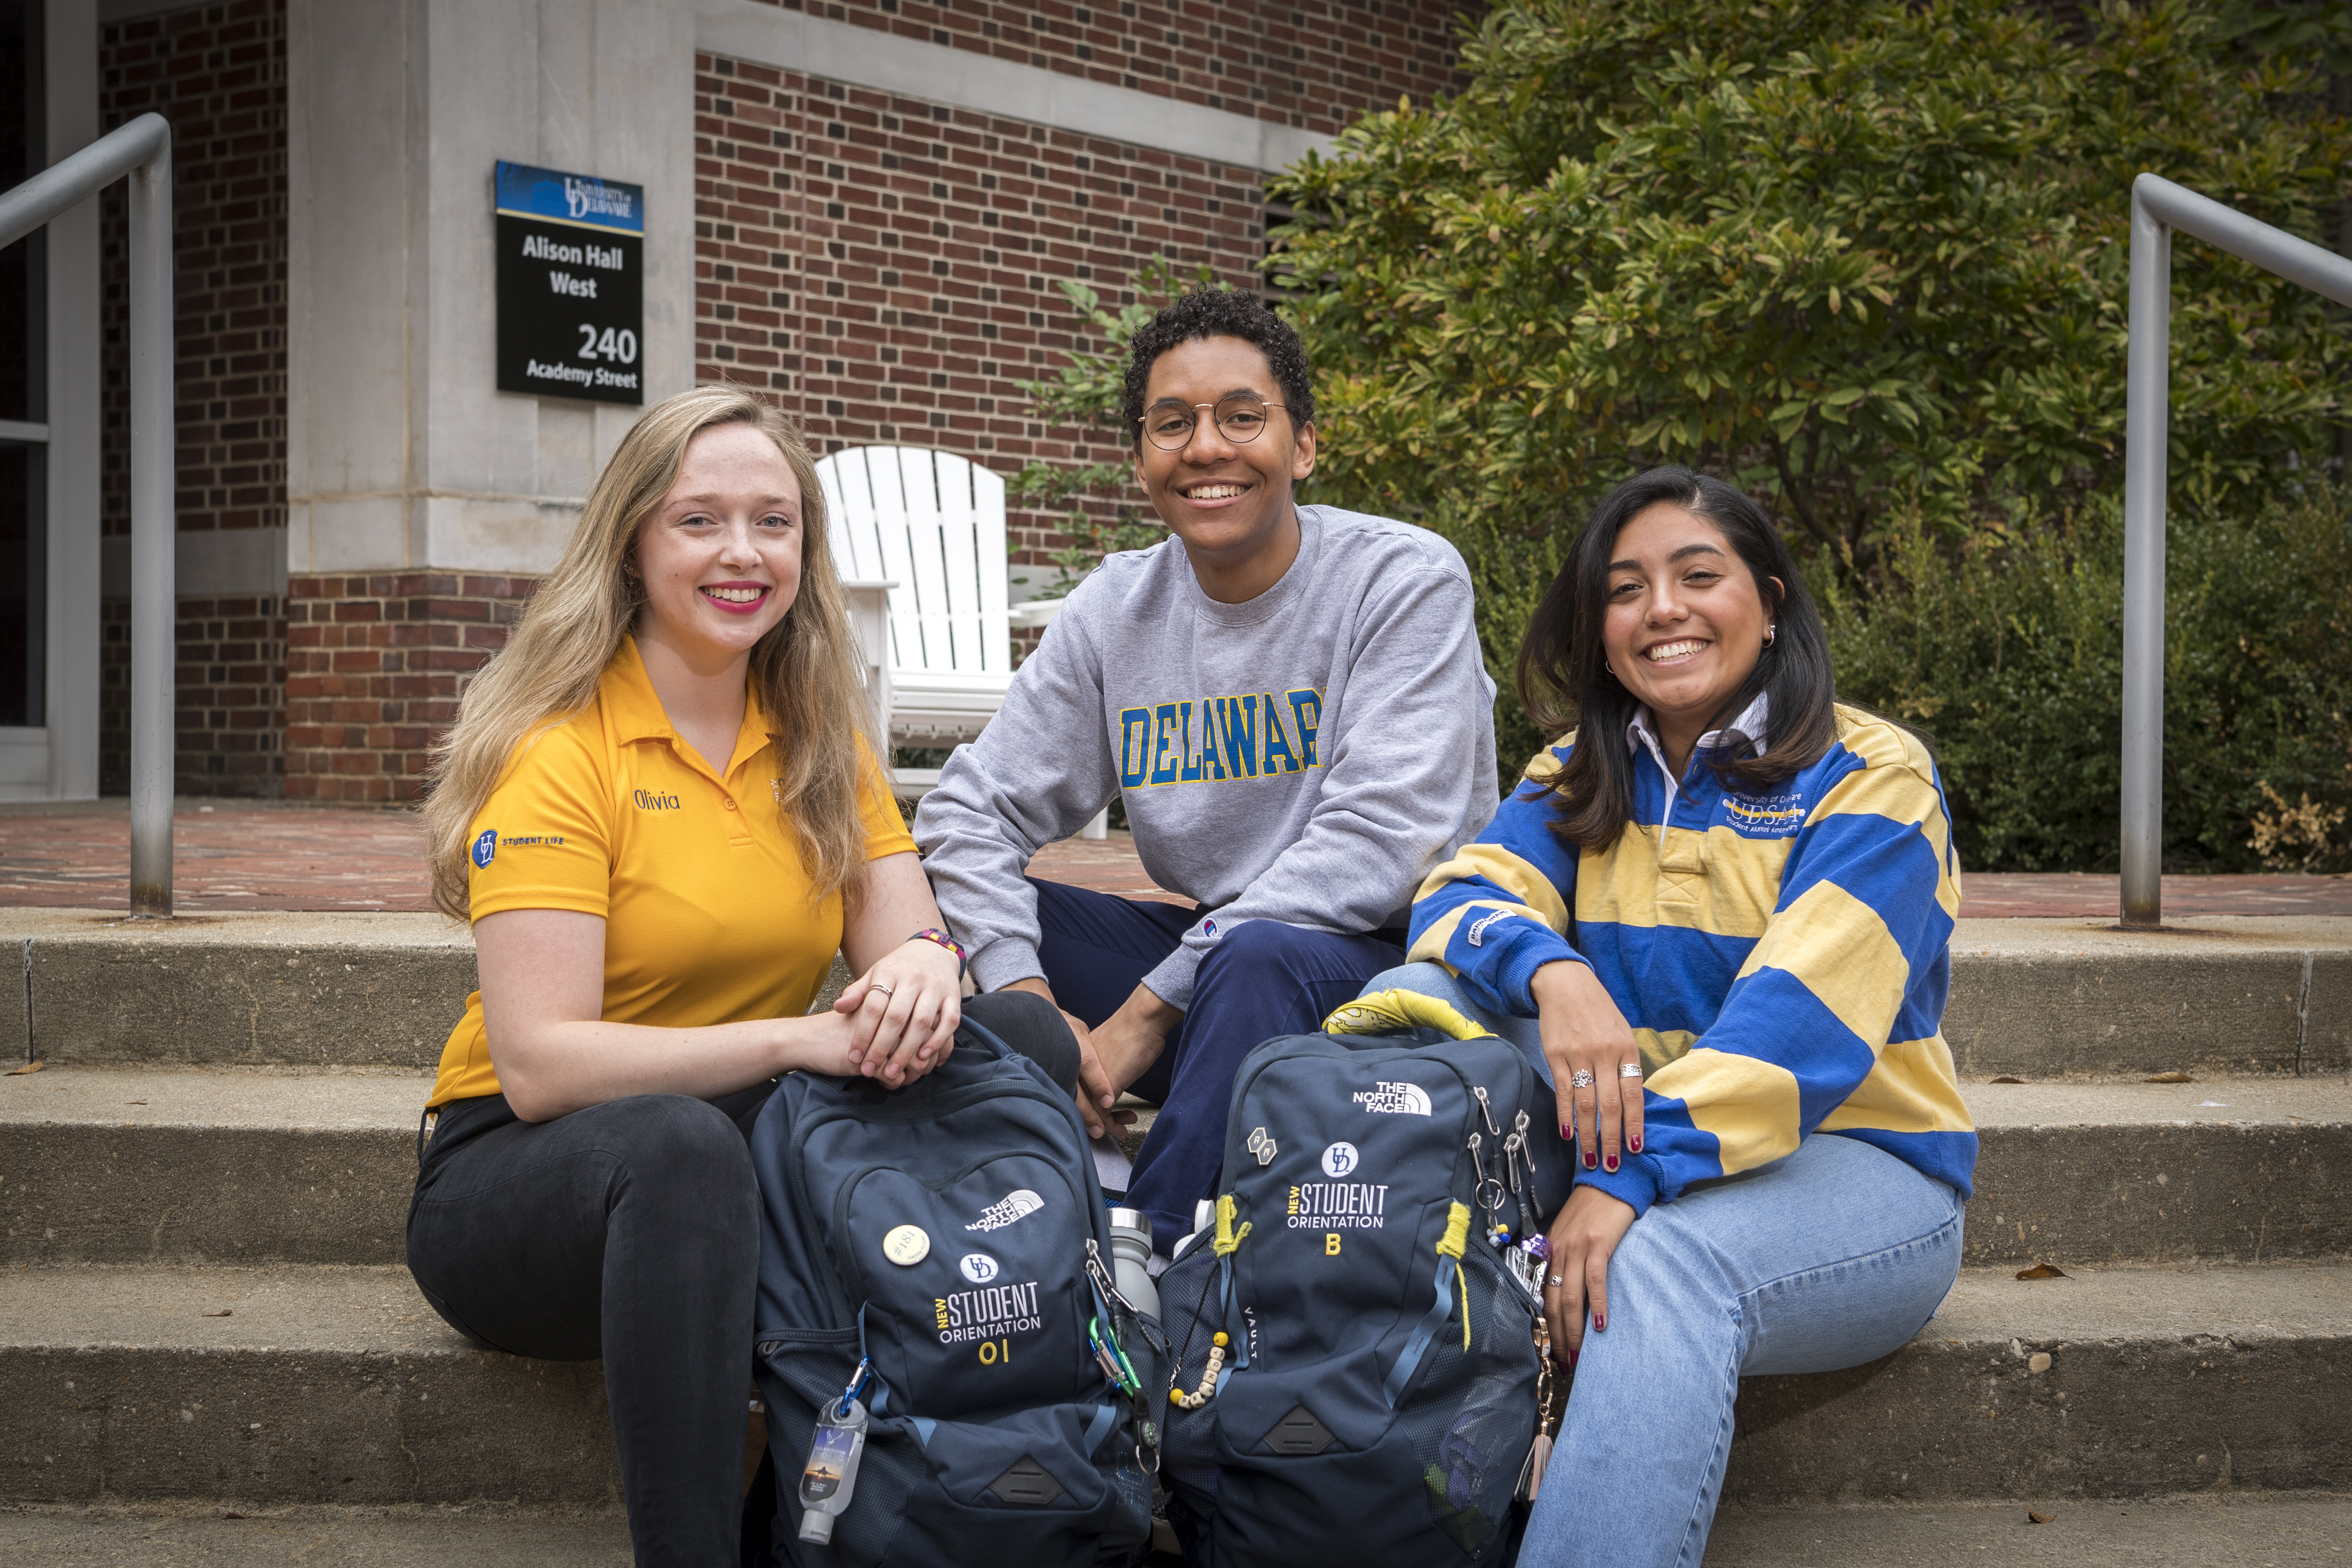 Students Olivia Ingman (left), Brenda Juarez (right) and Josh Lewis (center) are all seniors who worked this summer as NSO Orientation Leaders for incoming freshman.